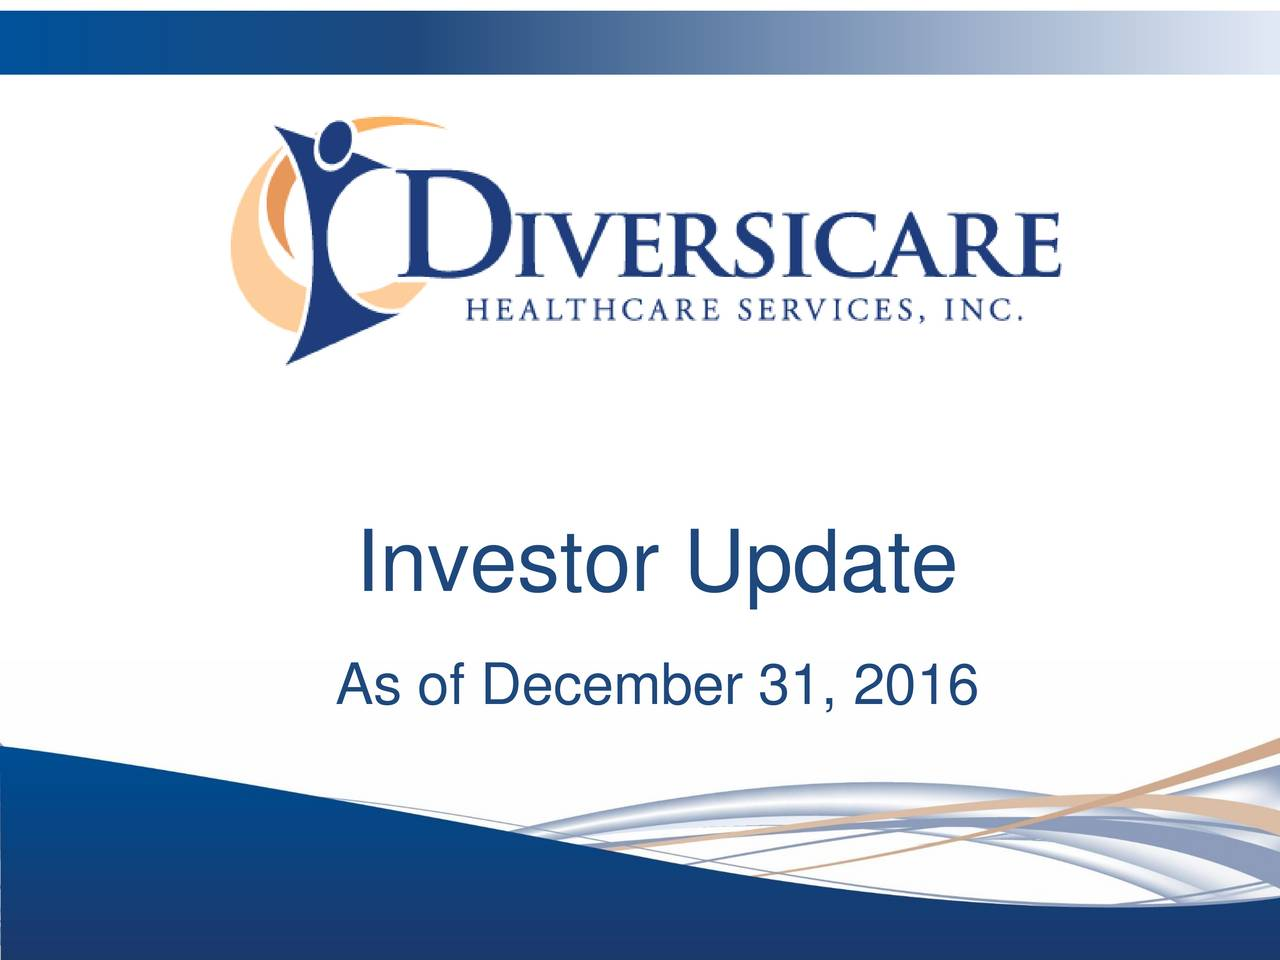 Investor Update As of December 31, 2016